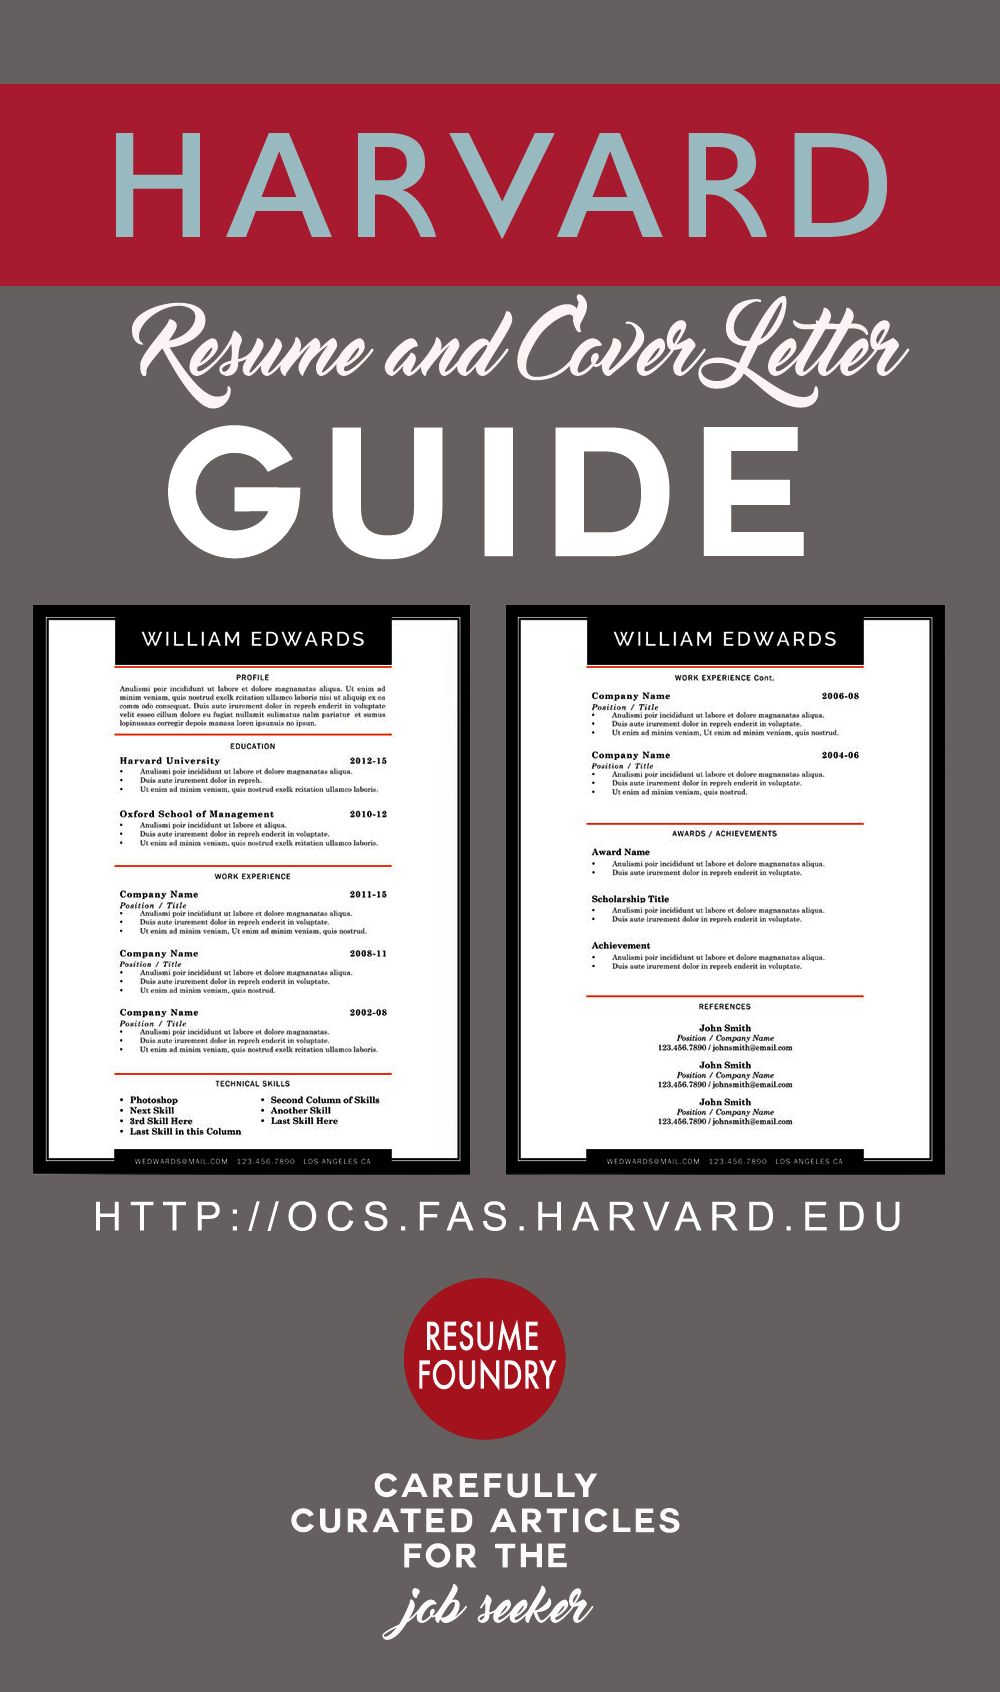 Action Words For Resume Harvard